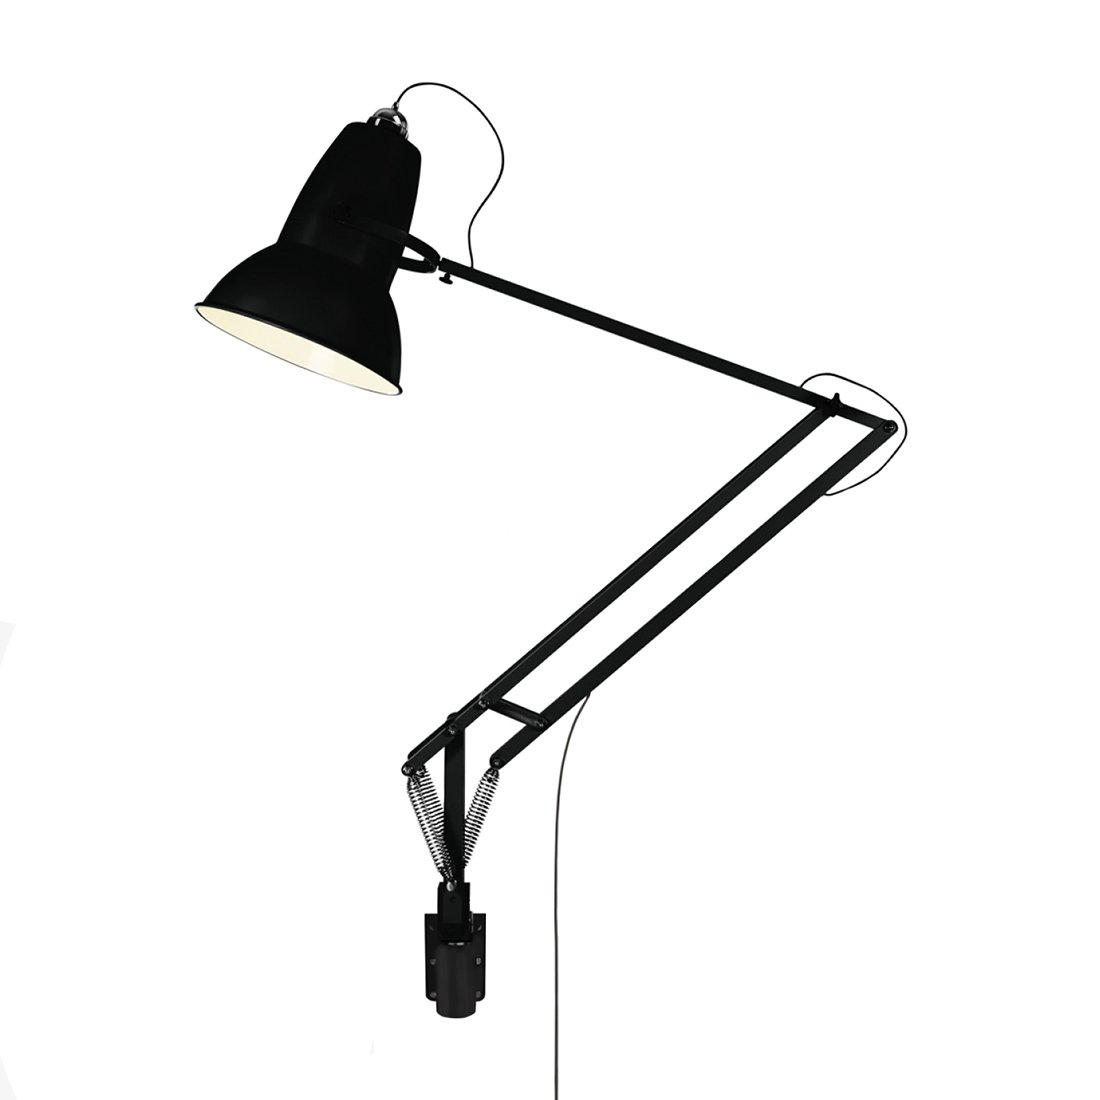 Anglepoise Original 1227 Giant Wall Mounted Jet Black Wandlamp